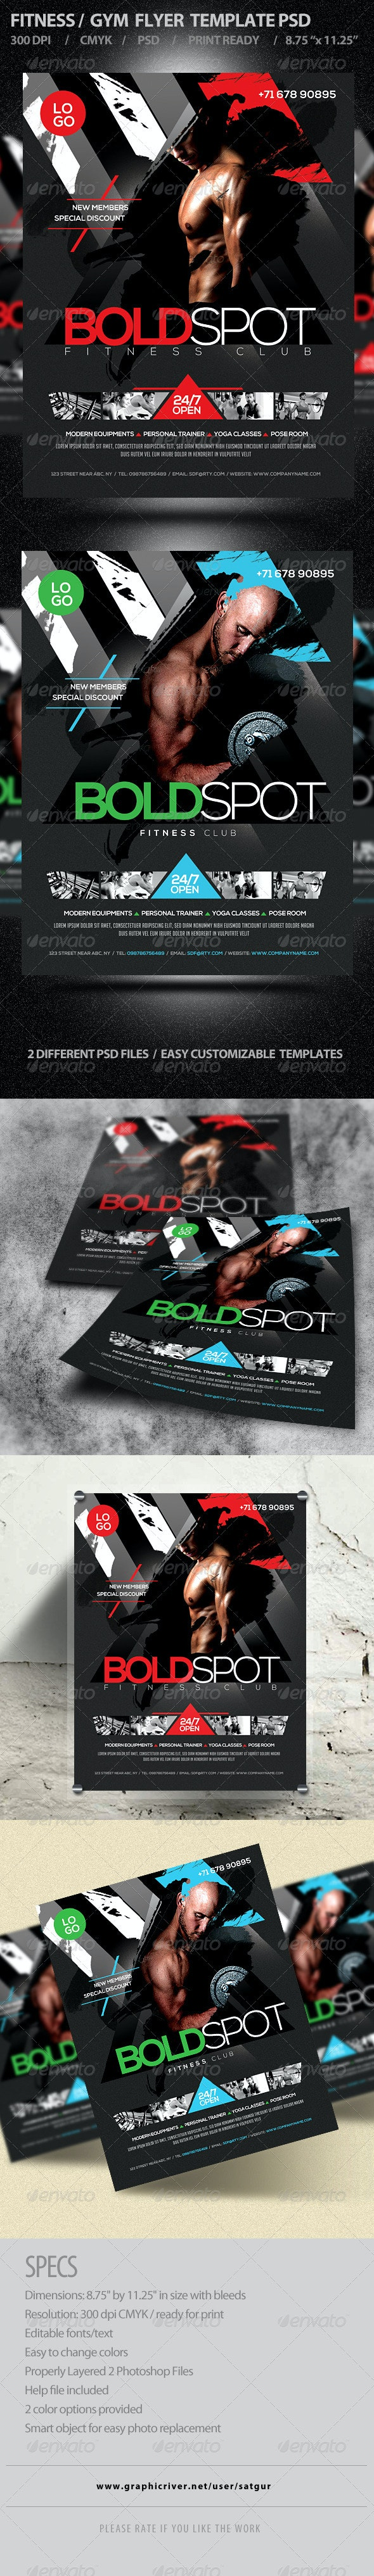 Fitness Flyer /Gym Flyer Template PSD V7 - Corporate Flyers